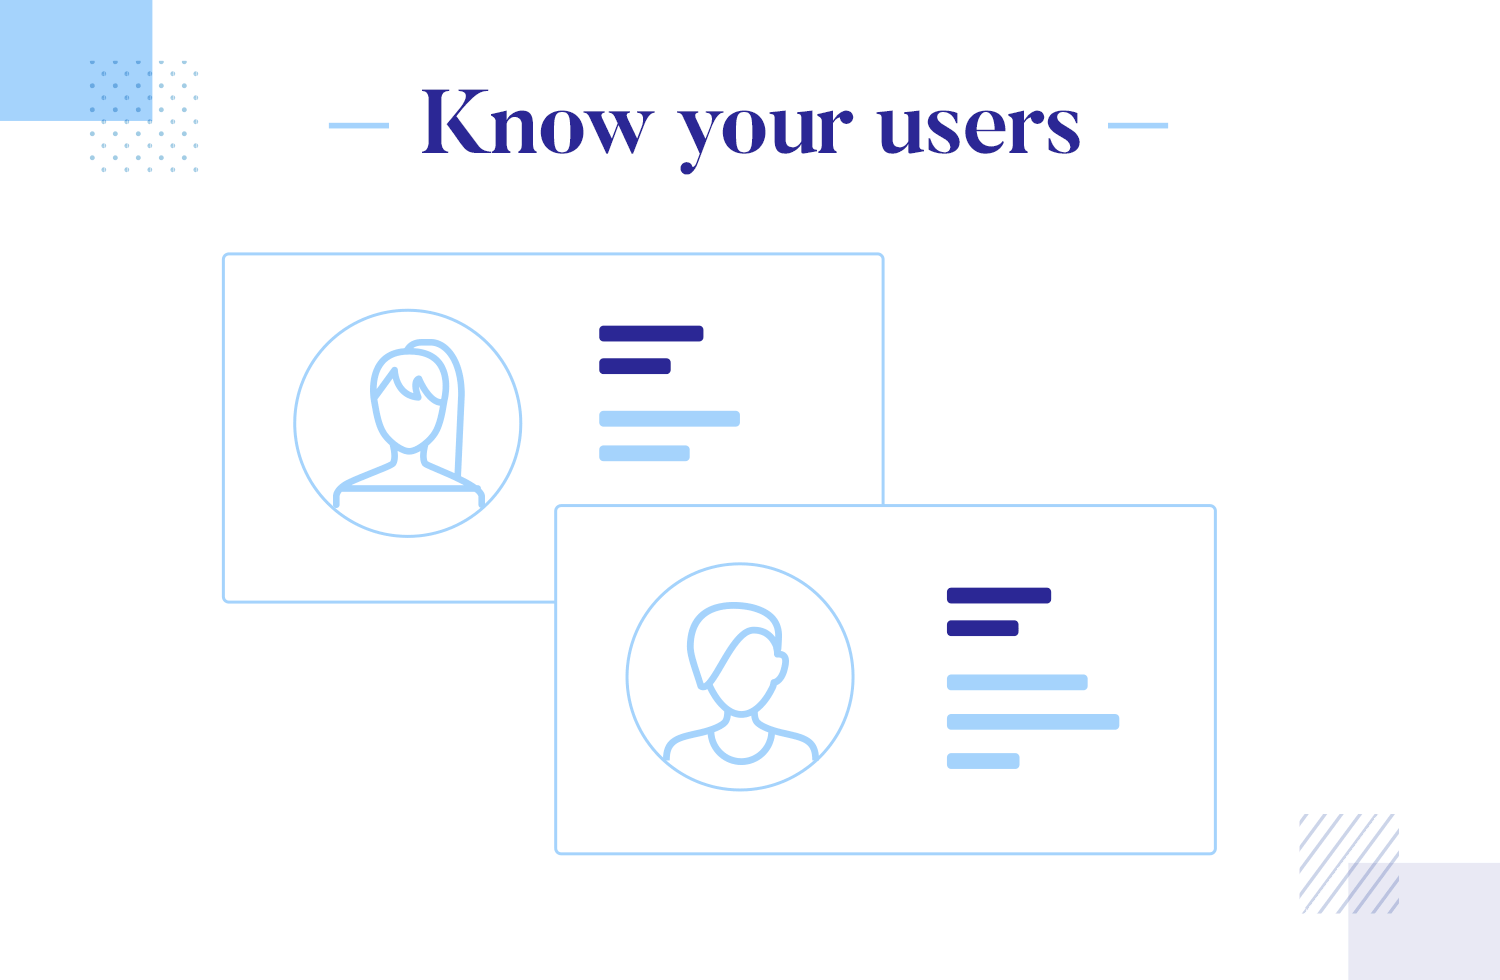 User onboarding best practices - know your users